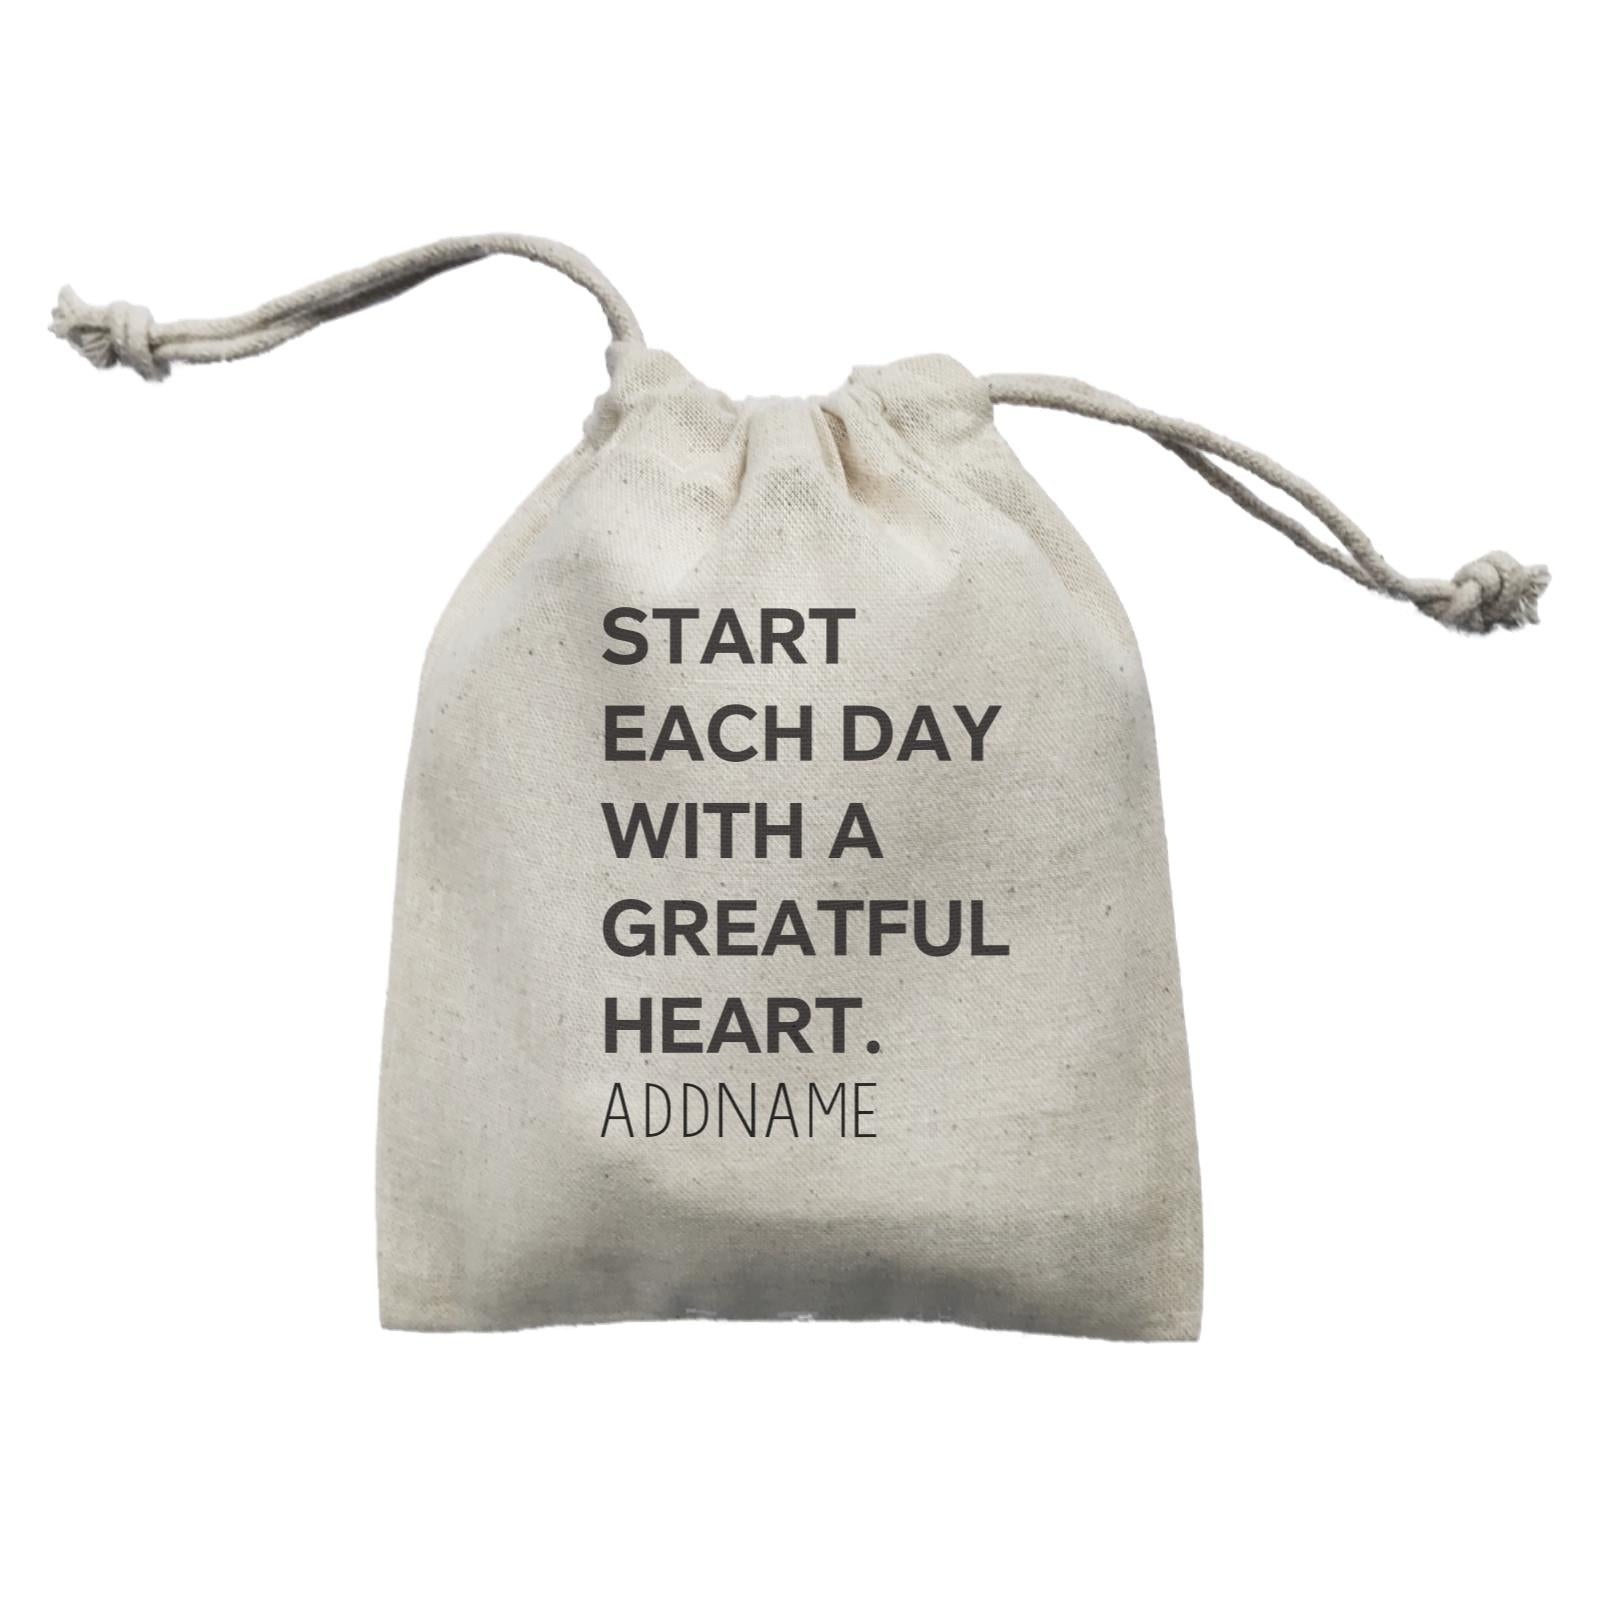 Inspiration Quotes Start Each Day With A Greatful Heart Addname Mini Accessories Mini Pouch